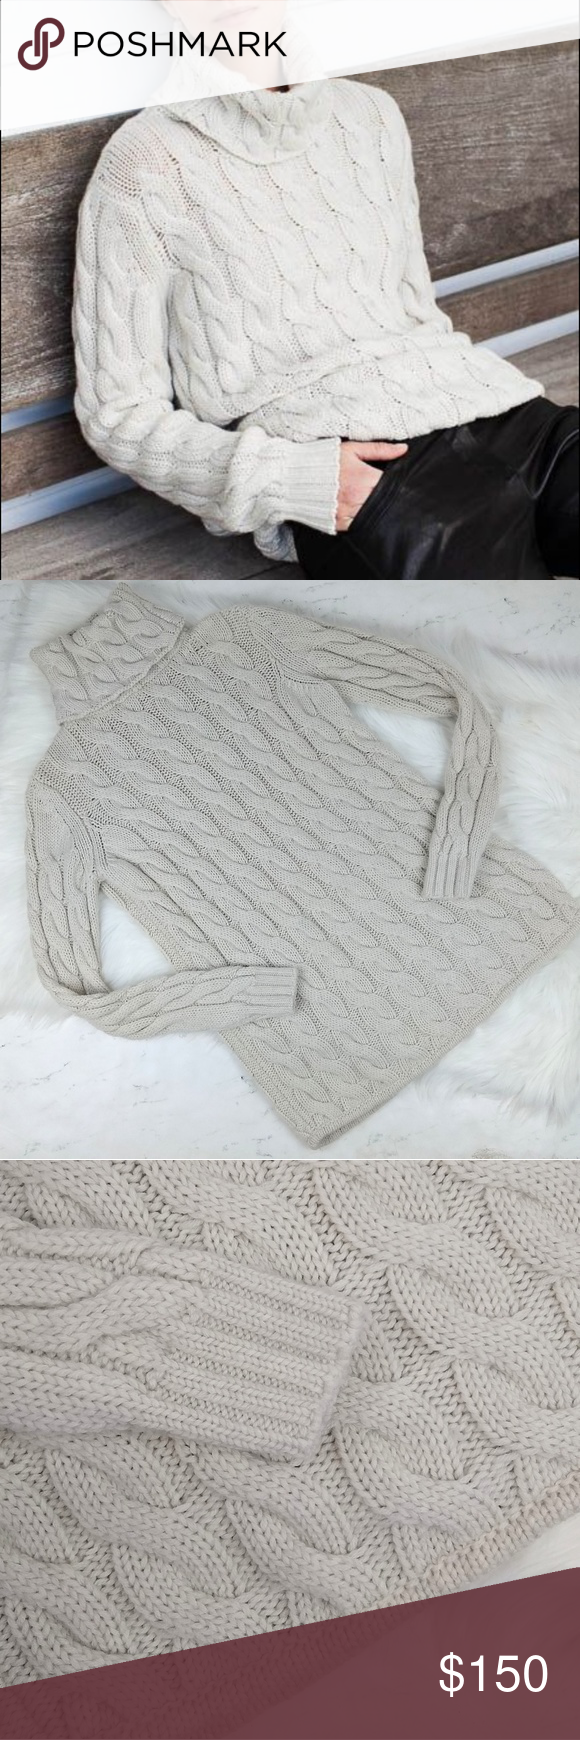 Emerson Fry Chunky Cable Knit Turtle Neck Sweater Emerson Fry Chunky Cable Knit Turtle Neck Sweater Natural Wool color Size XS X-Small Excellent Pre-owned Condition  Loose chunky sweater! Super soft! Emerson Fry Sweaters Cowl & Turtlenecks #emersonfry Emerson Fry Chunky Cable Knit Turtle Neck Sweater Emerson Fry Chunky Cable Knit Turtle Neck Sweater Natural Wool color Size XS X-Small Excellent Pre-owned Condition  Loose chunky sweater! Super soft! Emerson Fry Sweaters Cowl & Turtlenecks #emersonfry